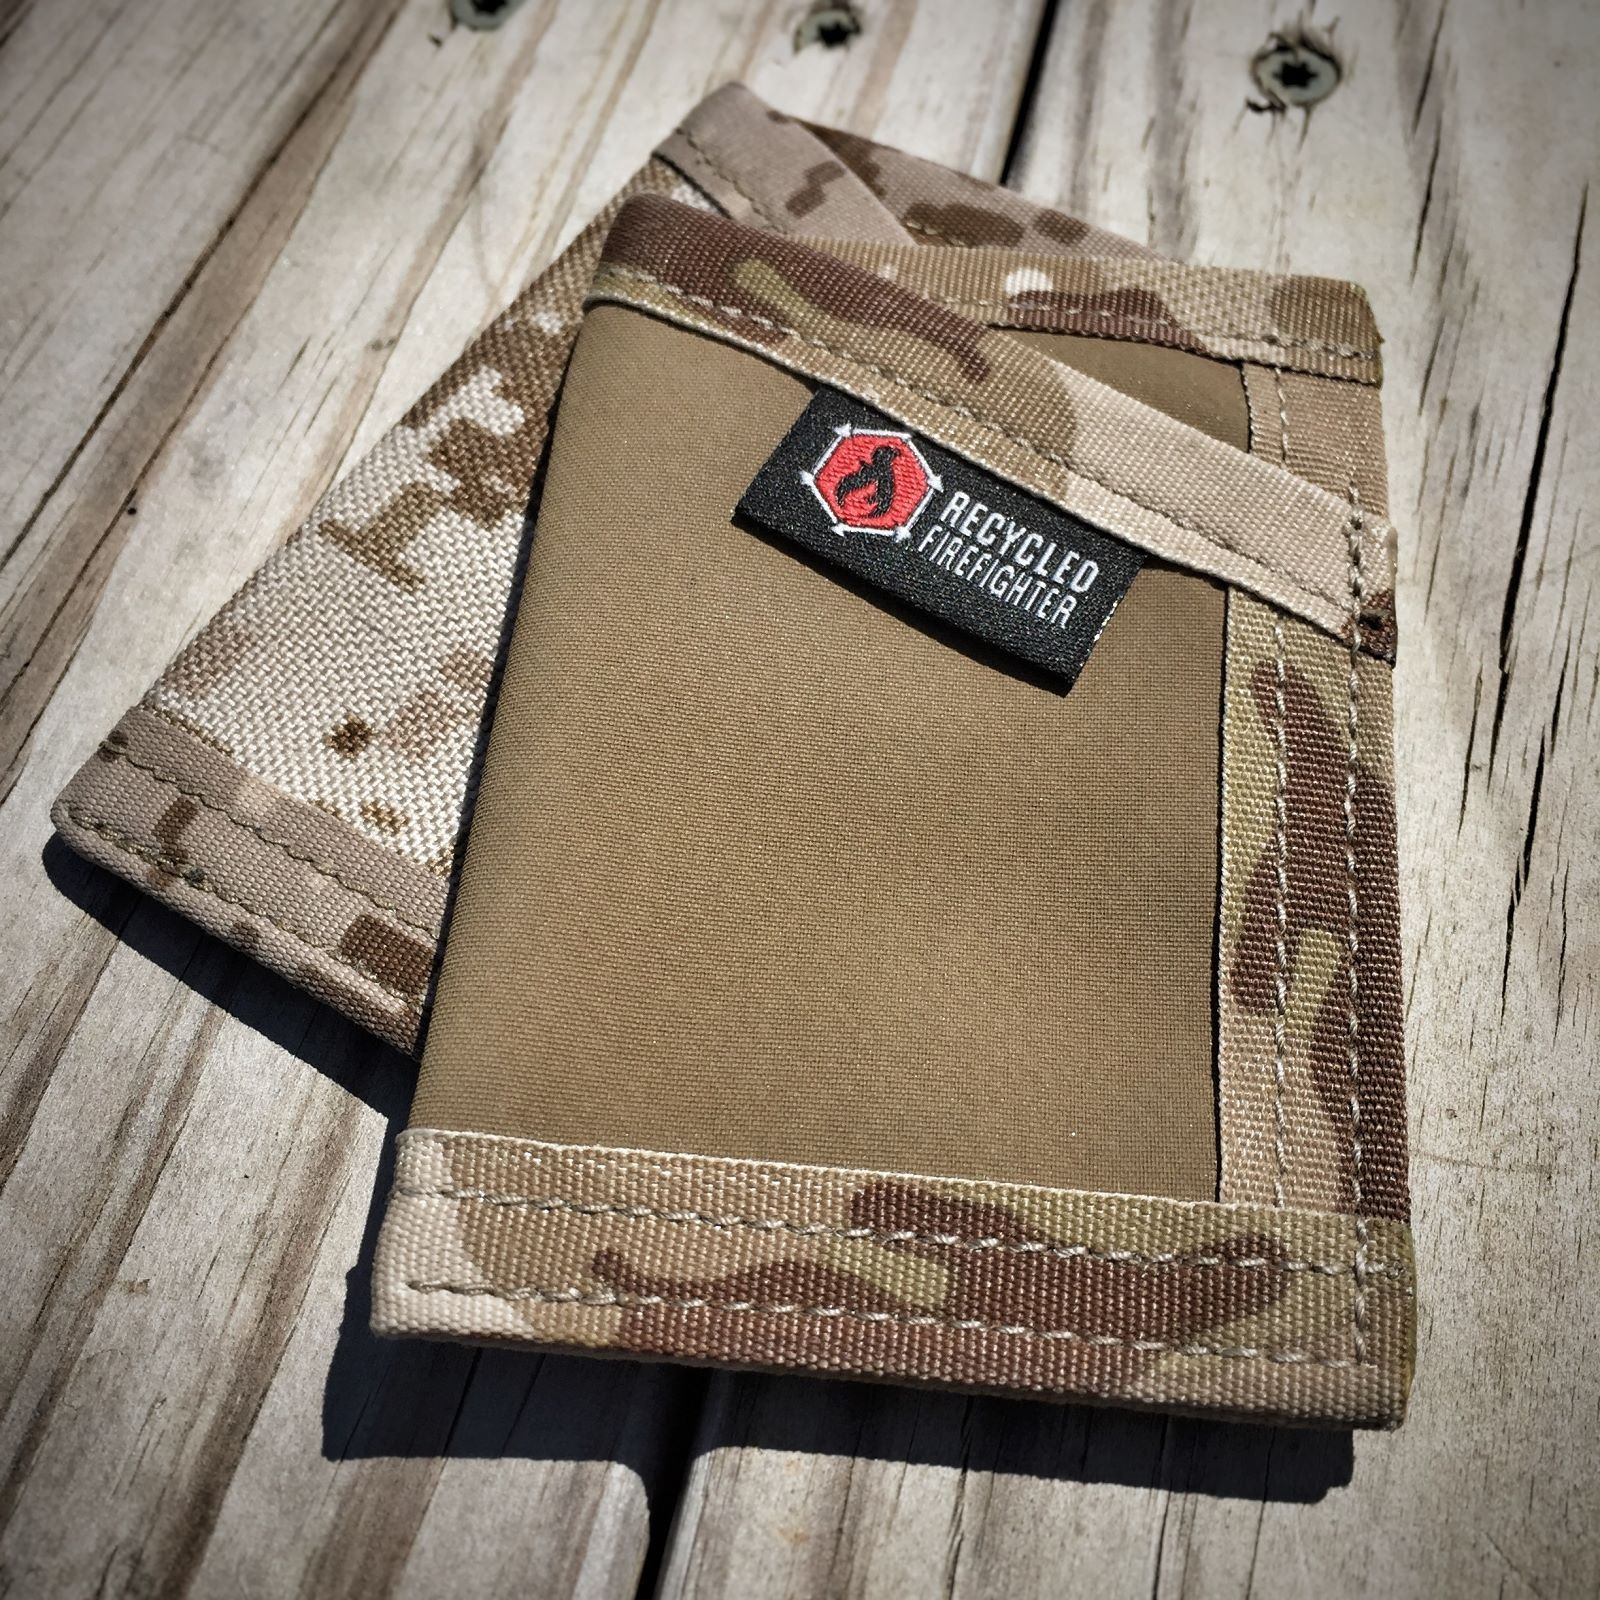 Hypalon Sergeant Wallet  Made from 18oz Synthetic rubber